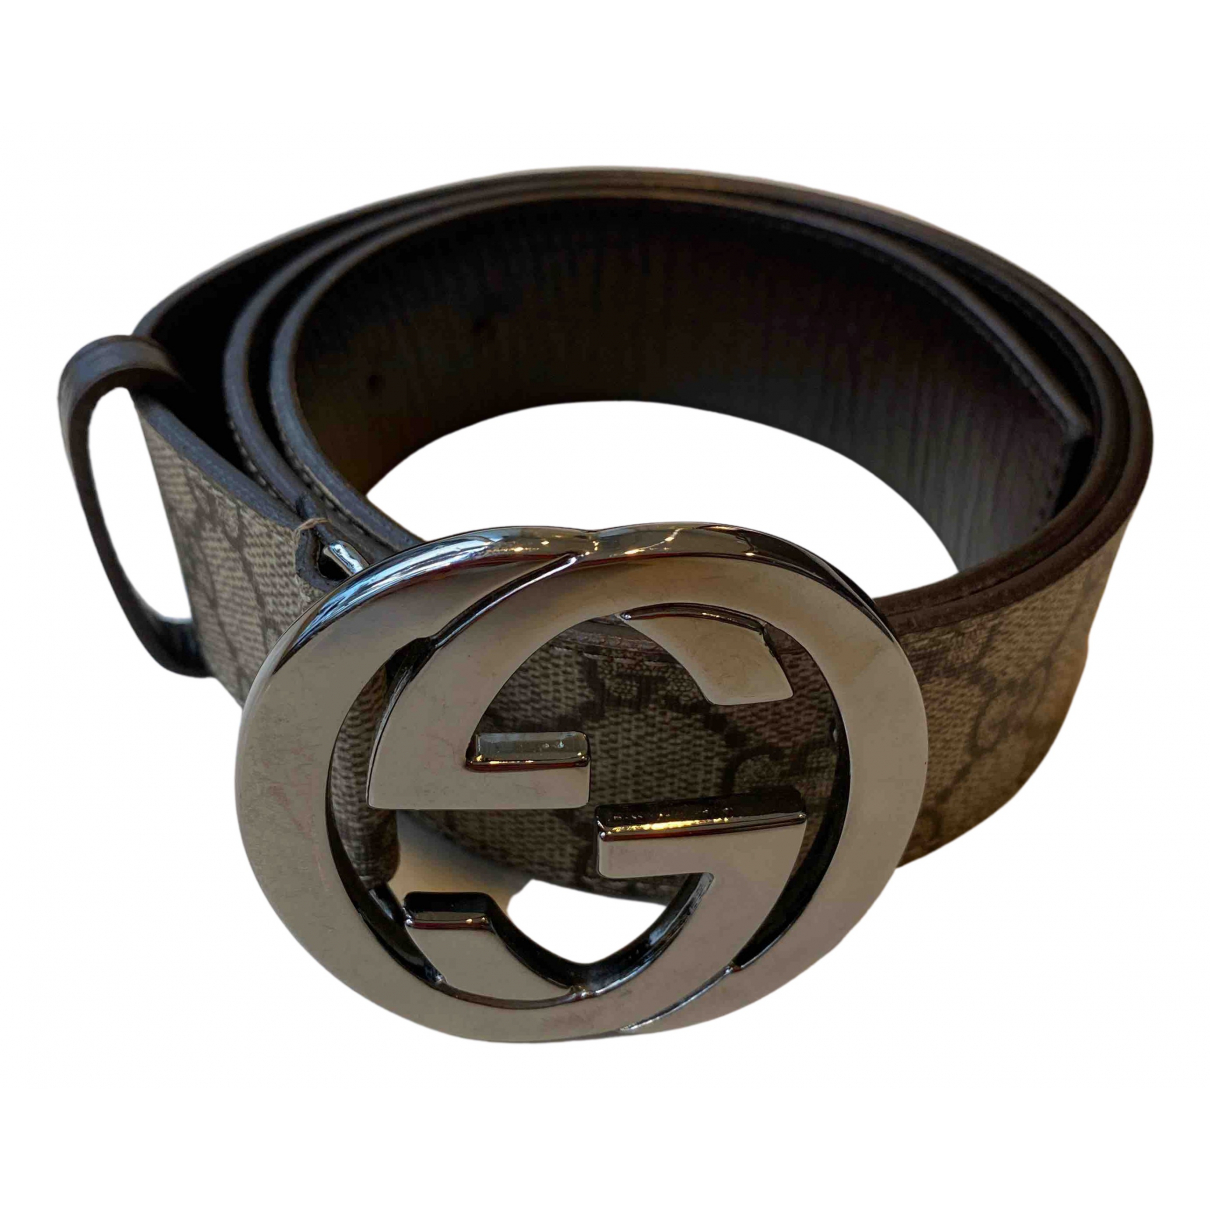 Gucci Interlocking Buckle Beige Cloth belt for Women 85 cm